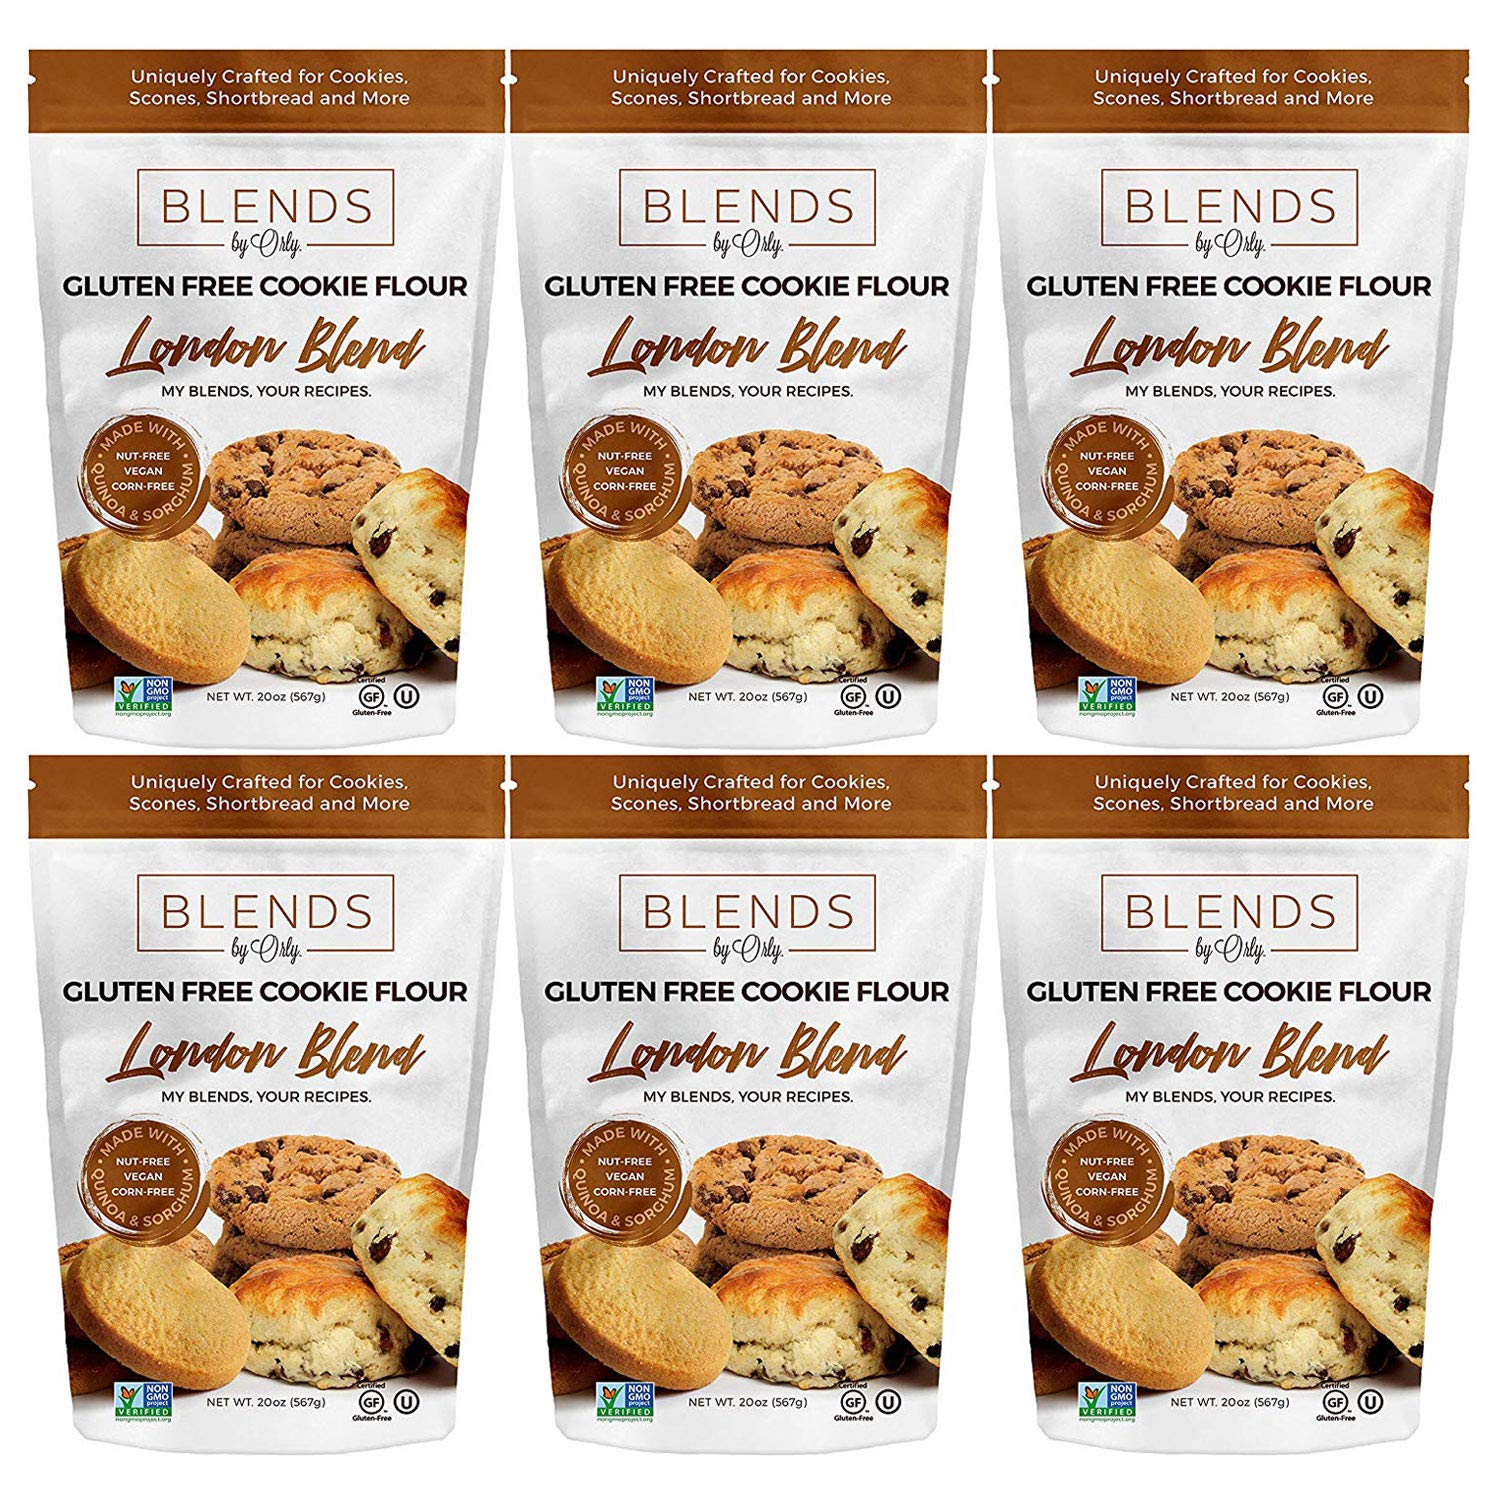 Premium Gluten Free Cookie Flour   Gluten Free Biscuits Flour - Baking Flour for Gluten Free Chocolate Chip Cookie, GF Oatmeal Raisin Cookies, GF Blondies from London Blends by Orly 120 OZ (Pack of 6) by Blends By Orly